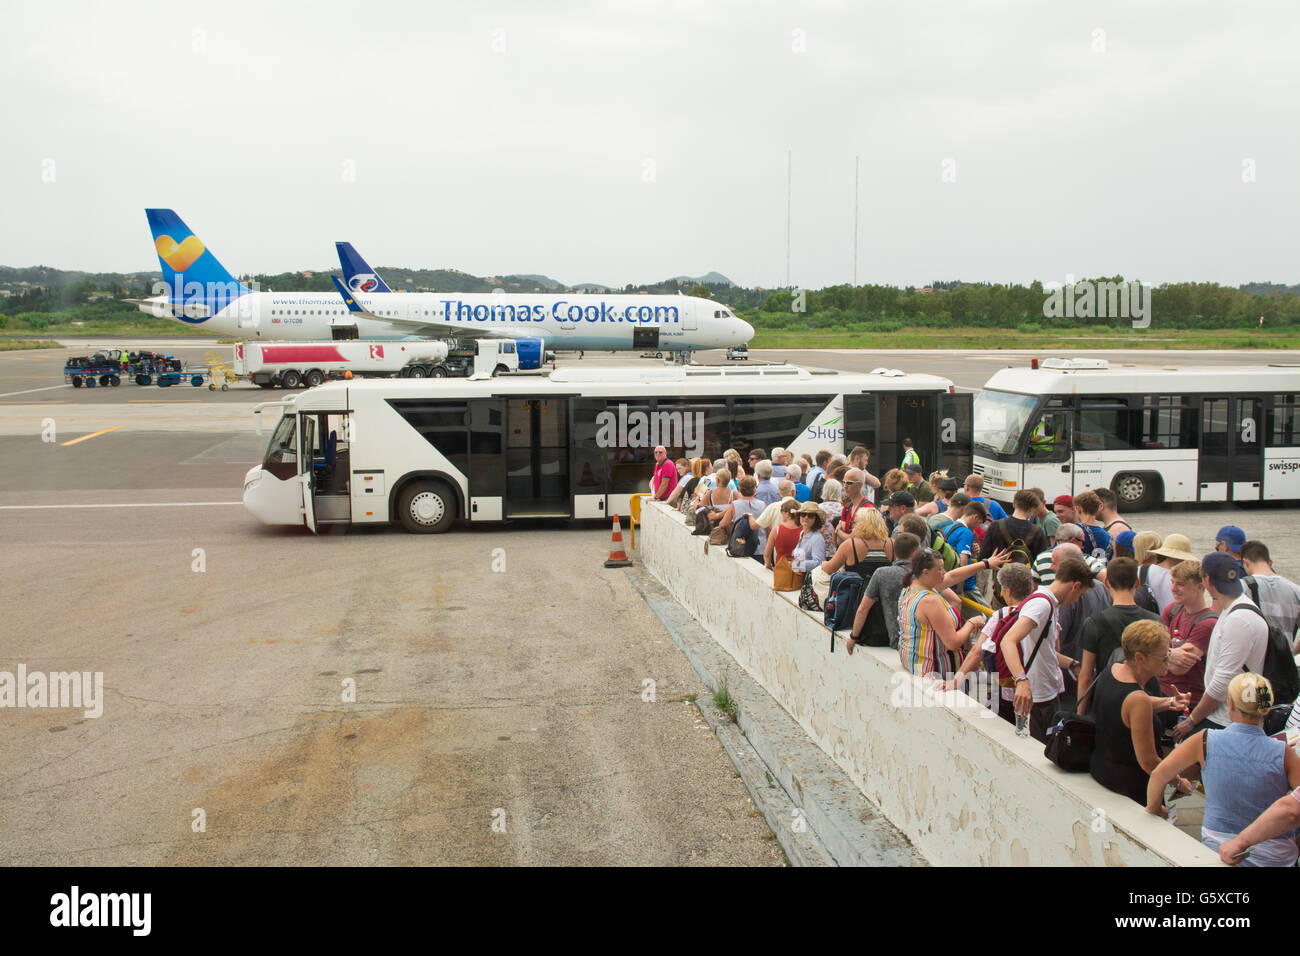 holidaymakers queuing to board bus to transfer to Thomas Cook plane at Corfu airport, Greece, Europe - Stock Image